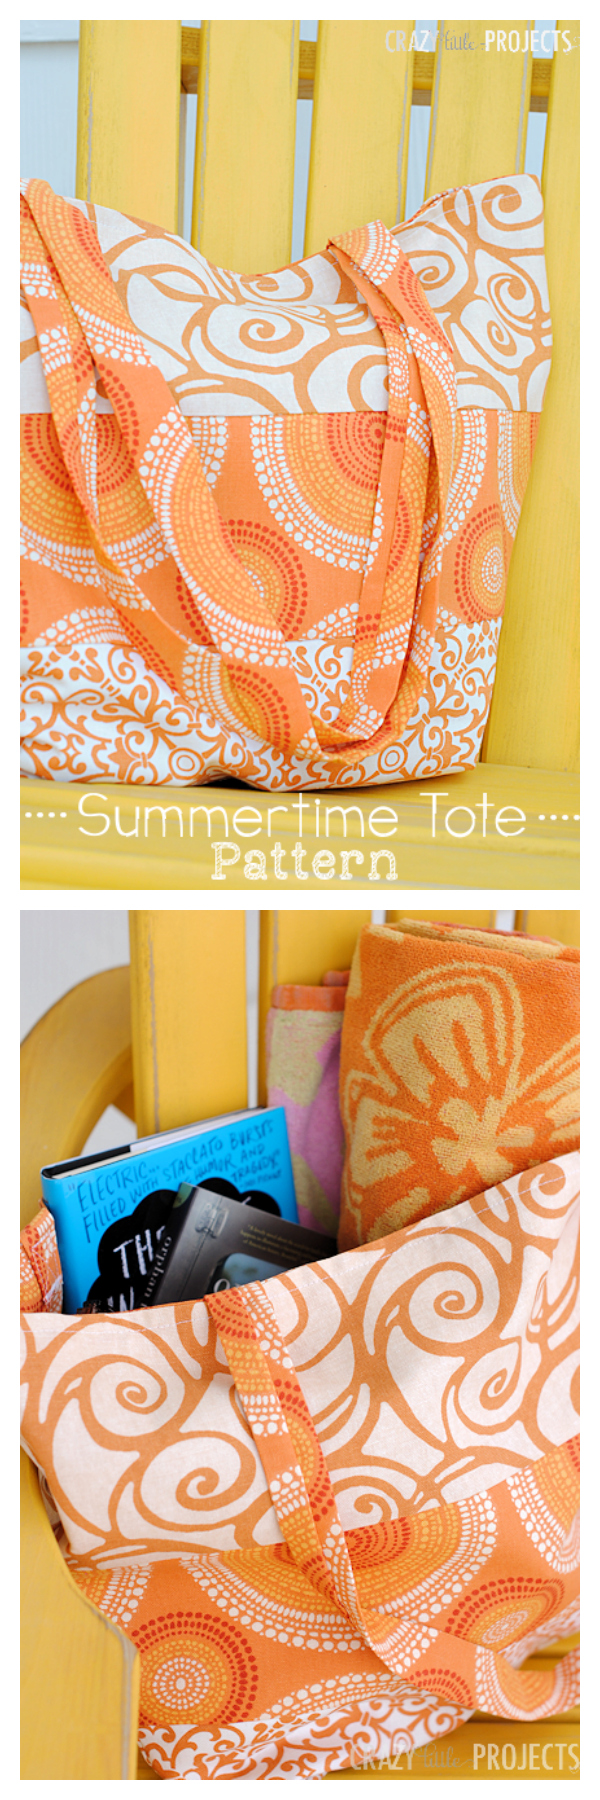 Summertime Tote Bag Pattern-Make this cute bag to take to the pool or to the beach this summer! Easy sewing pattern and great for beginners. #sew #freepatterns